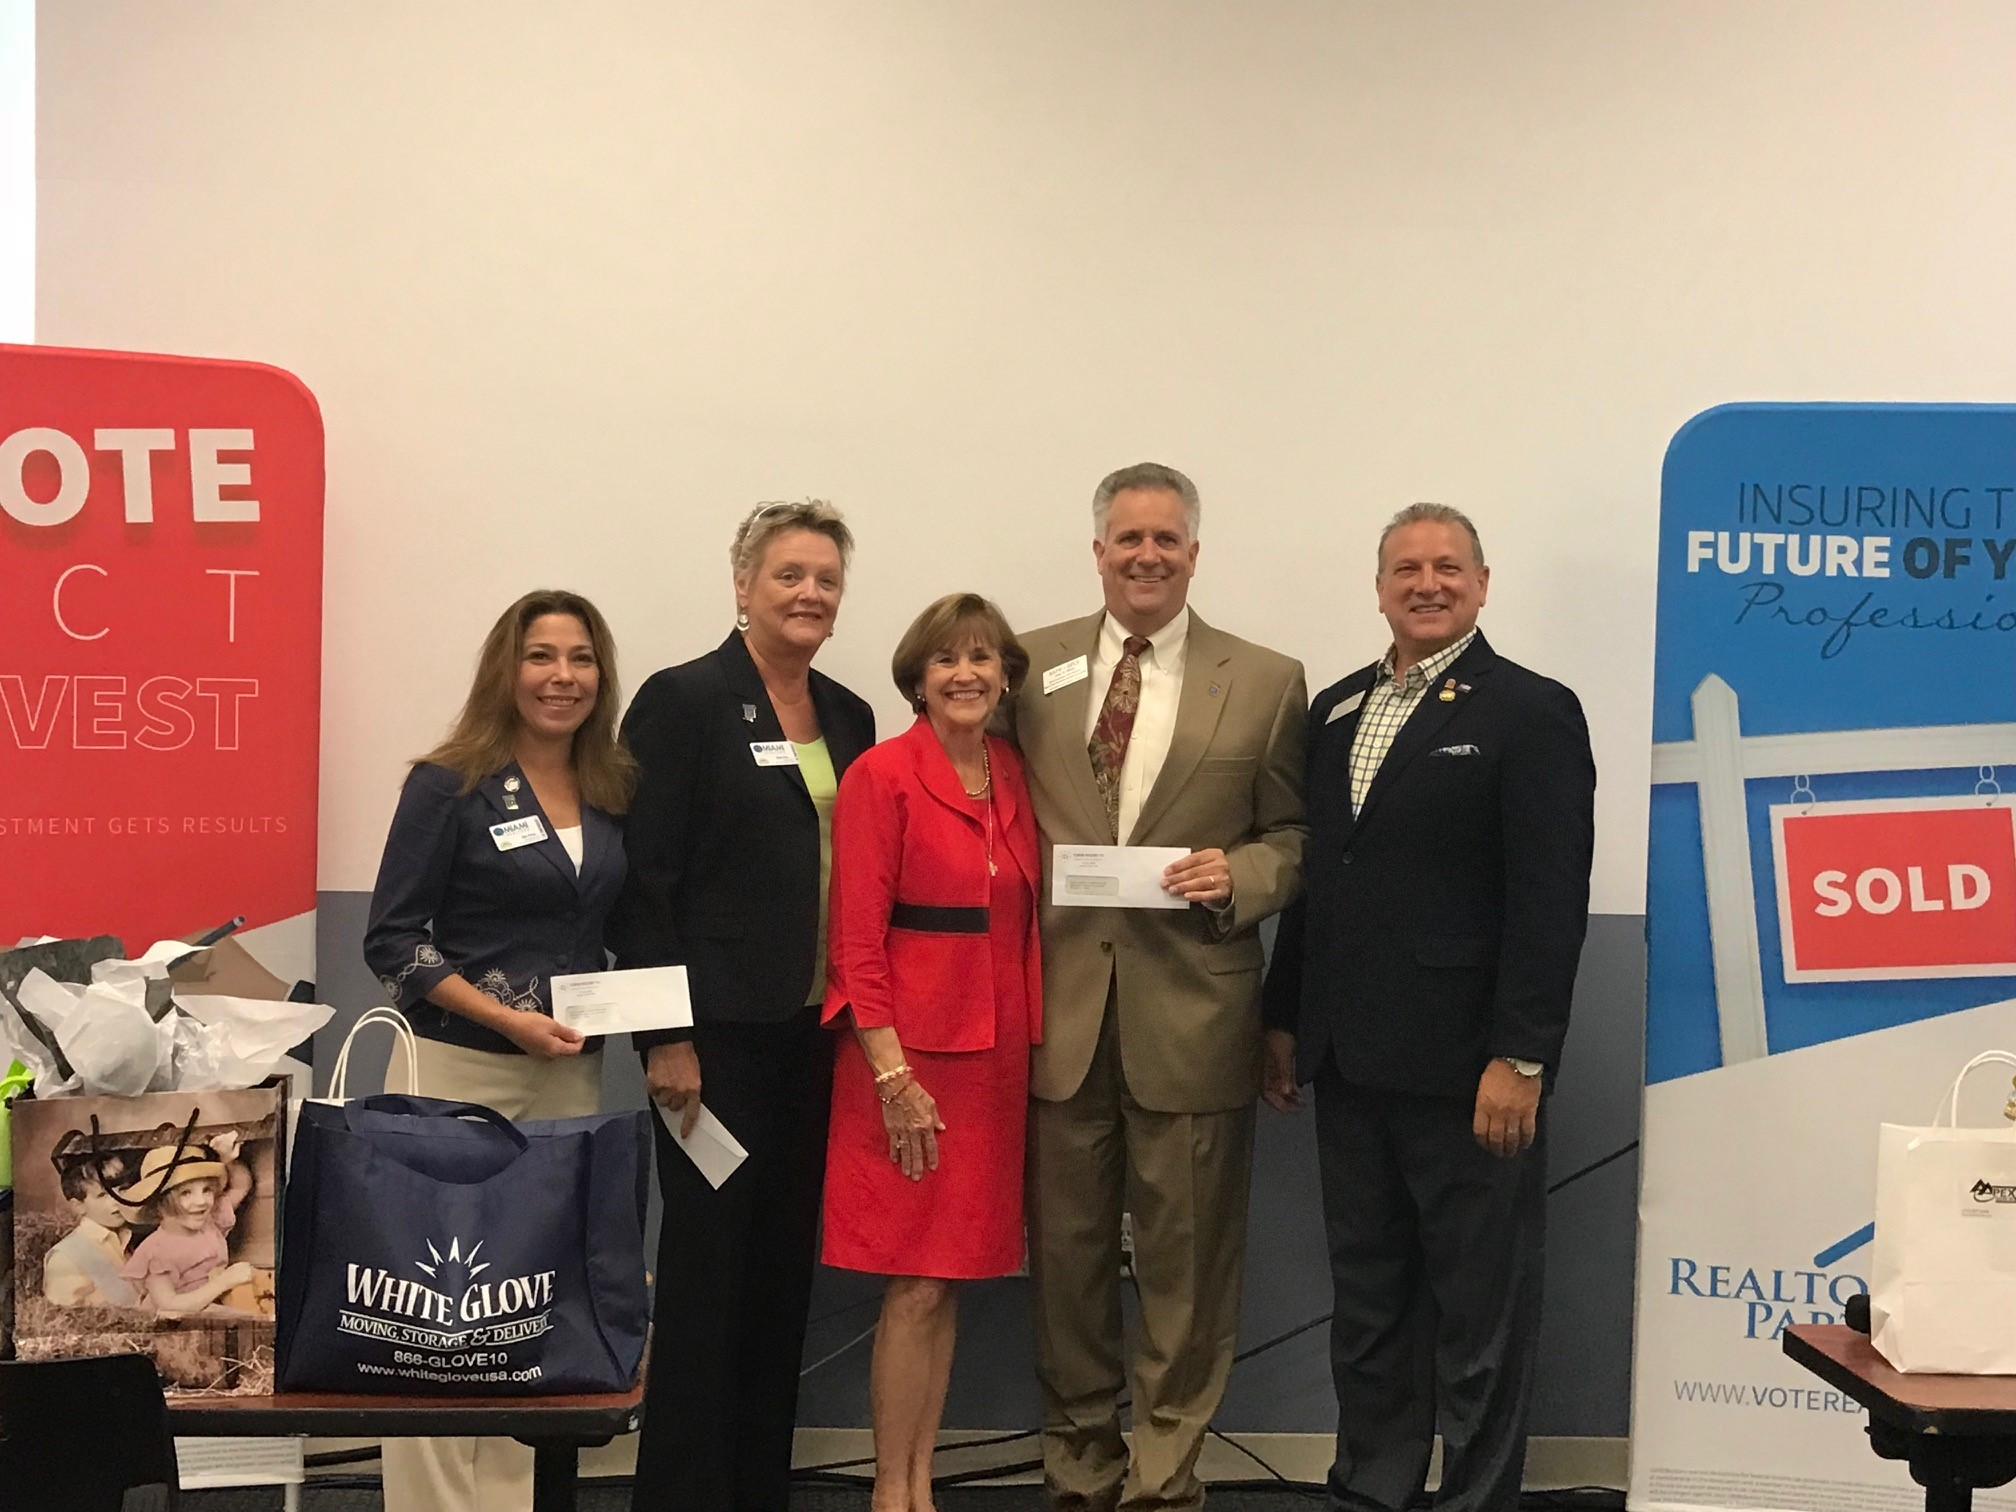 Left to Right: Kim Price and JTHS Council of Realtors® President Barb Fox, Candidate for Florida Senate District 25 Gayle Harrell, RAPB+GFLR Immediate Past President John Slivon and St. Lucie County Government Affairs Chair Anthony Gambardella